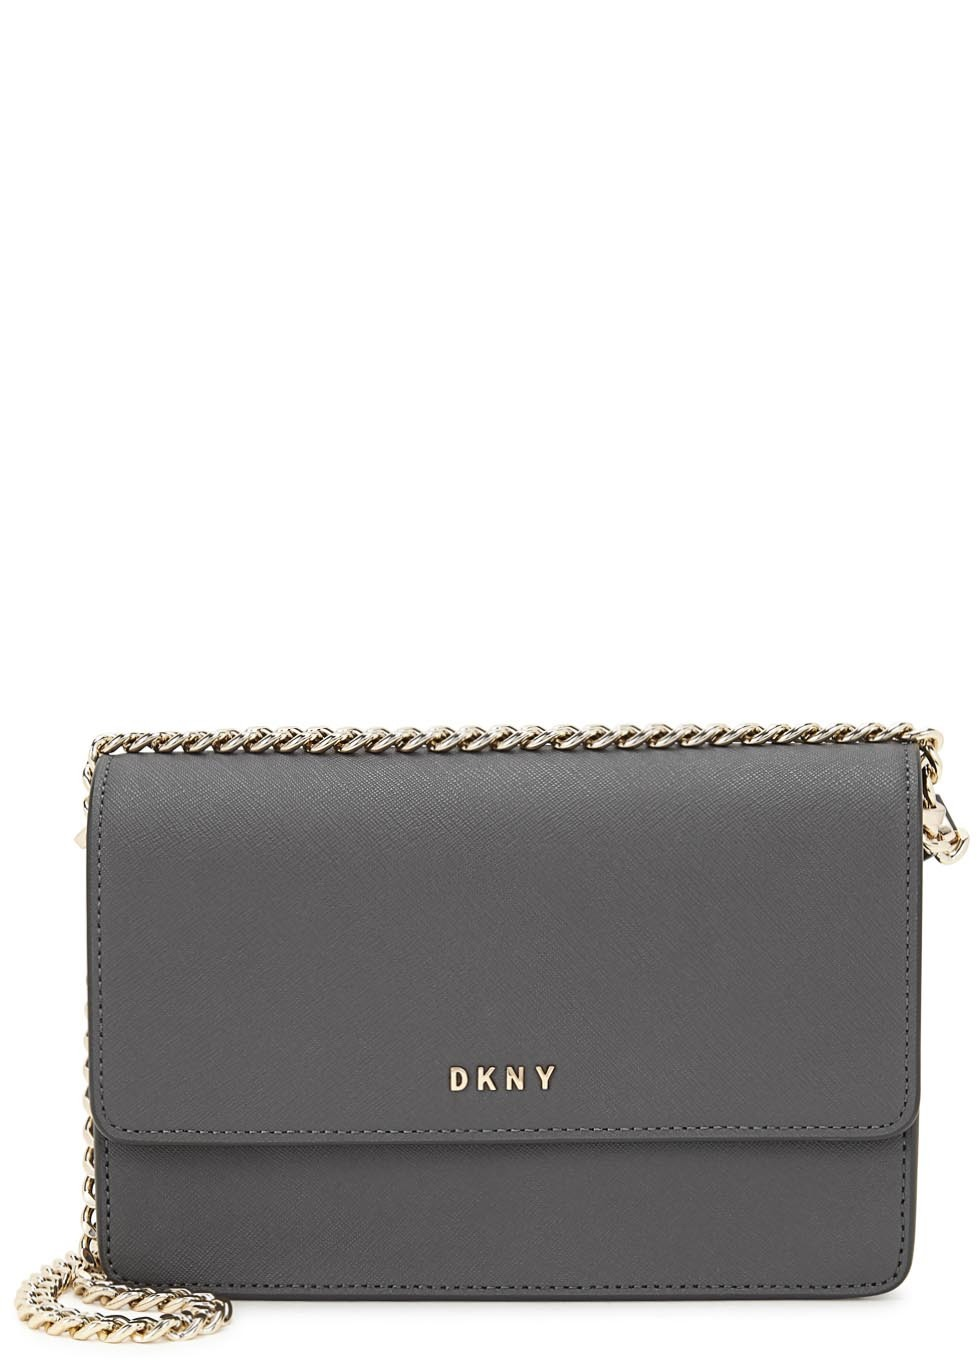 Bryant Park Dark Grey Leather Cross Body Bag - predominant colour: charcoal; occasions: casual, creative work; type of pattern: standard; style: shoulder; length: across body/long; size: standard; material: leather; pattern: plain; finish: plain; season: s/s 2016; wardrobe: investment